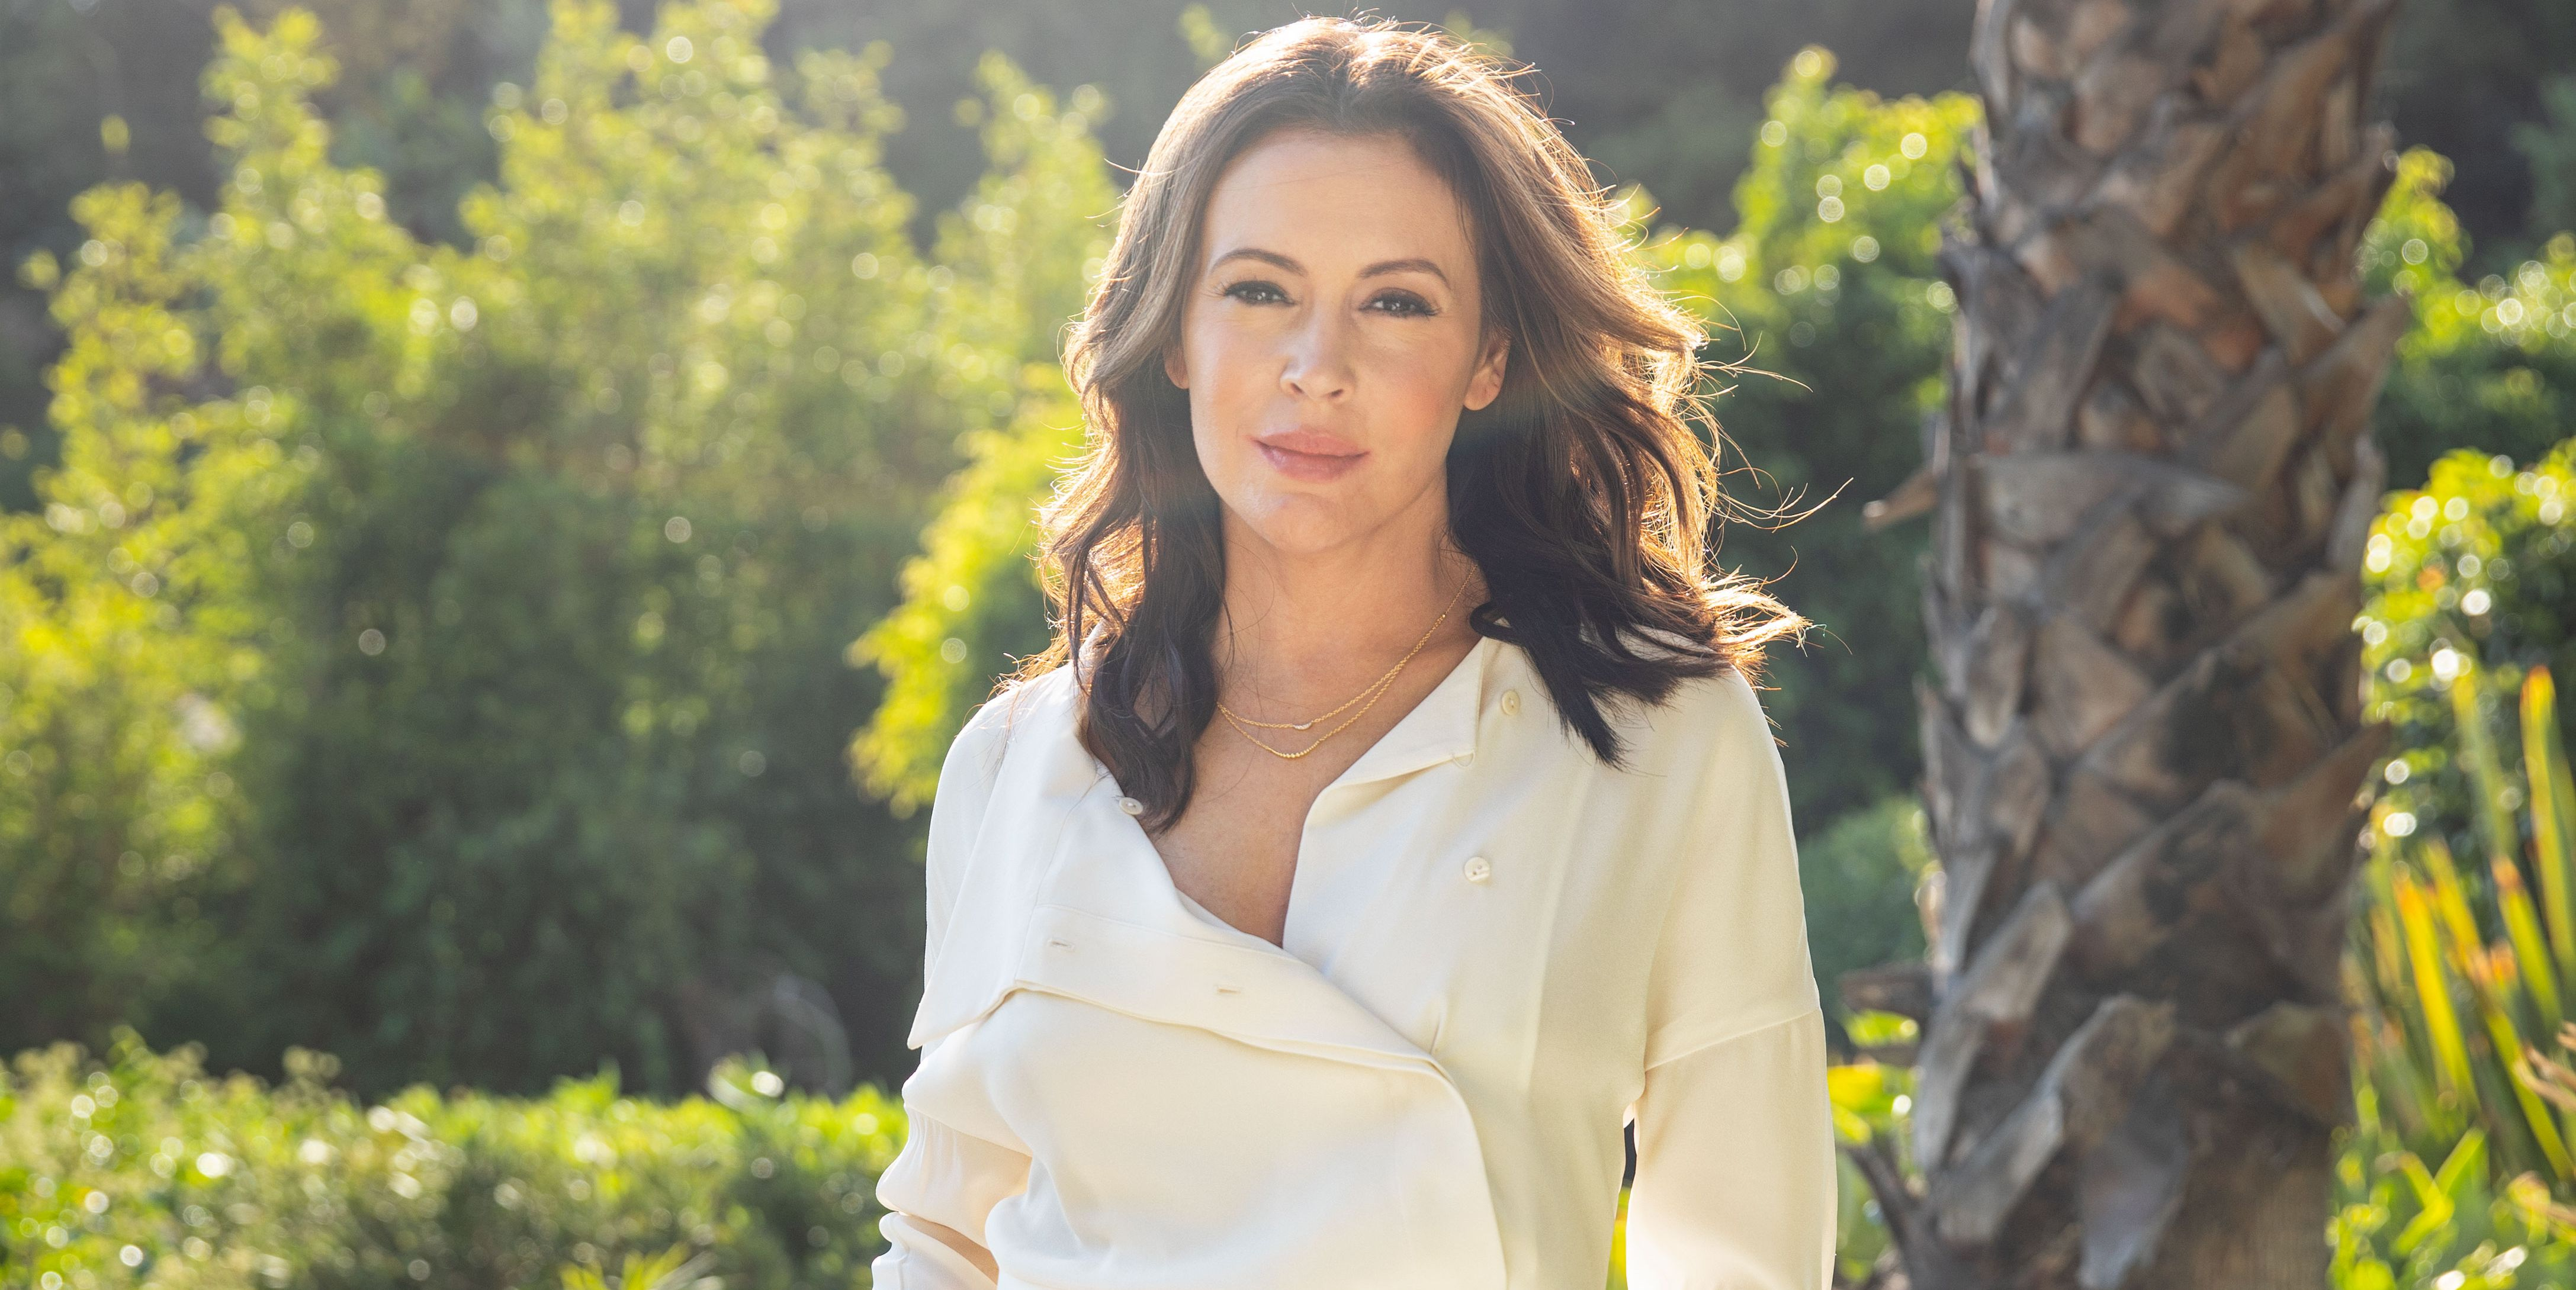 Alyssa Milano Has Always Fought for Justice. Maybe You Just Weren't Paying Attention.